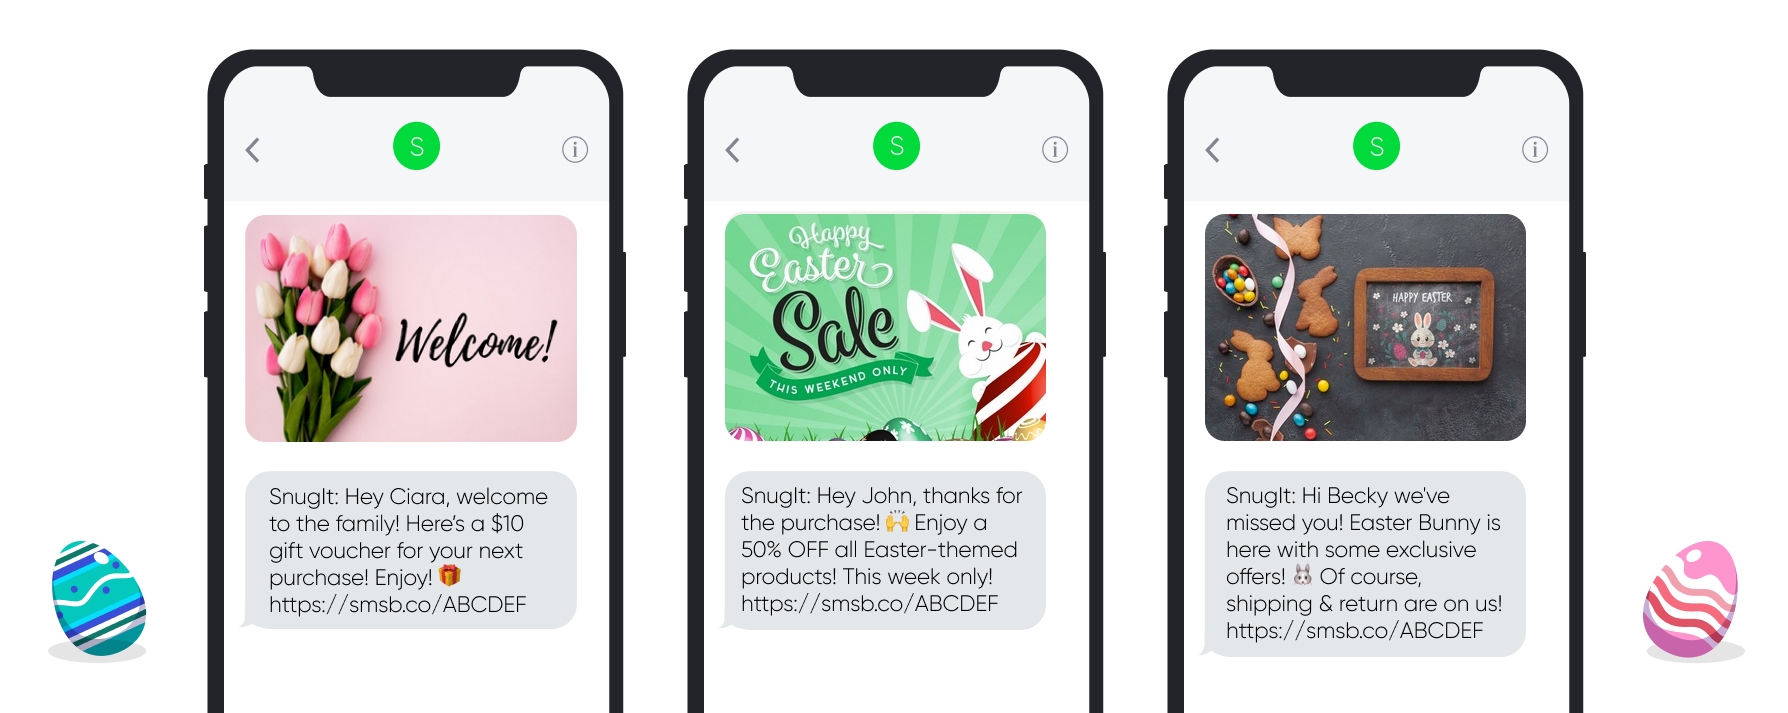 Easter_discount_strategies_SMSBump